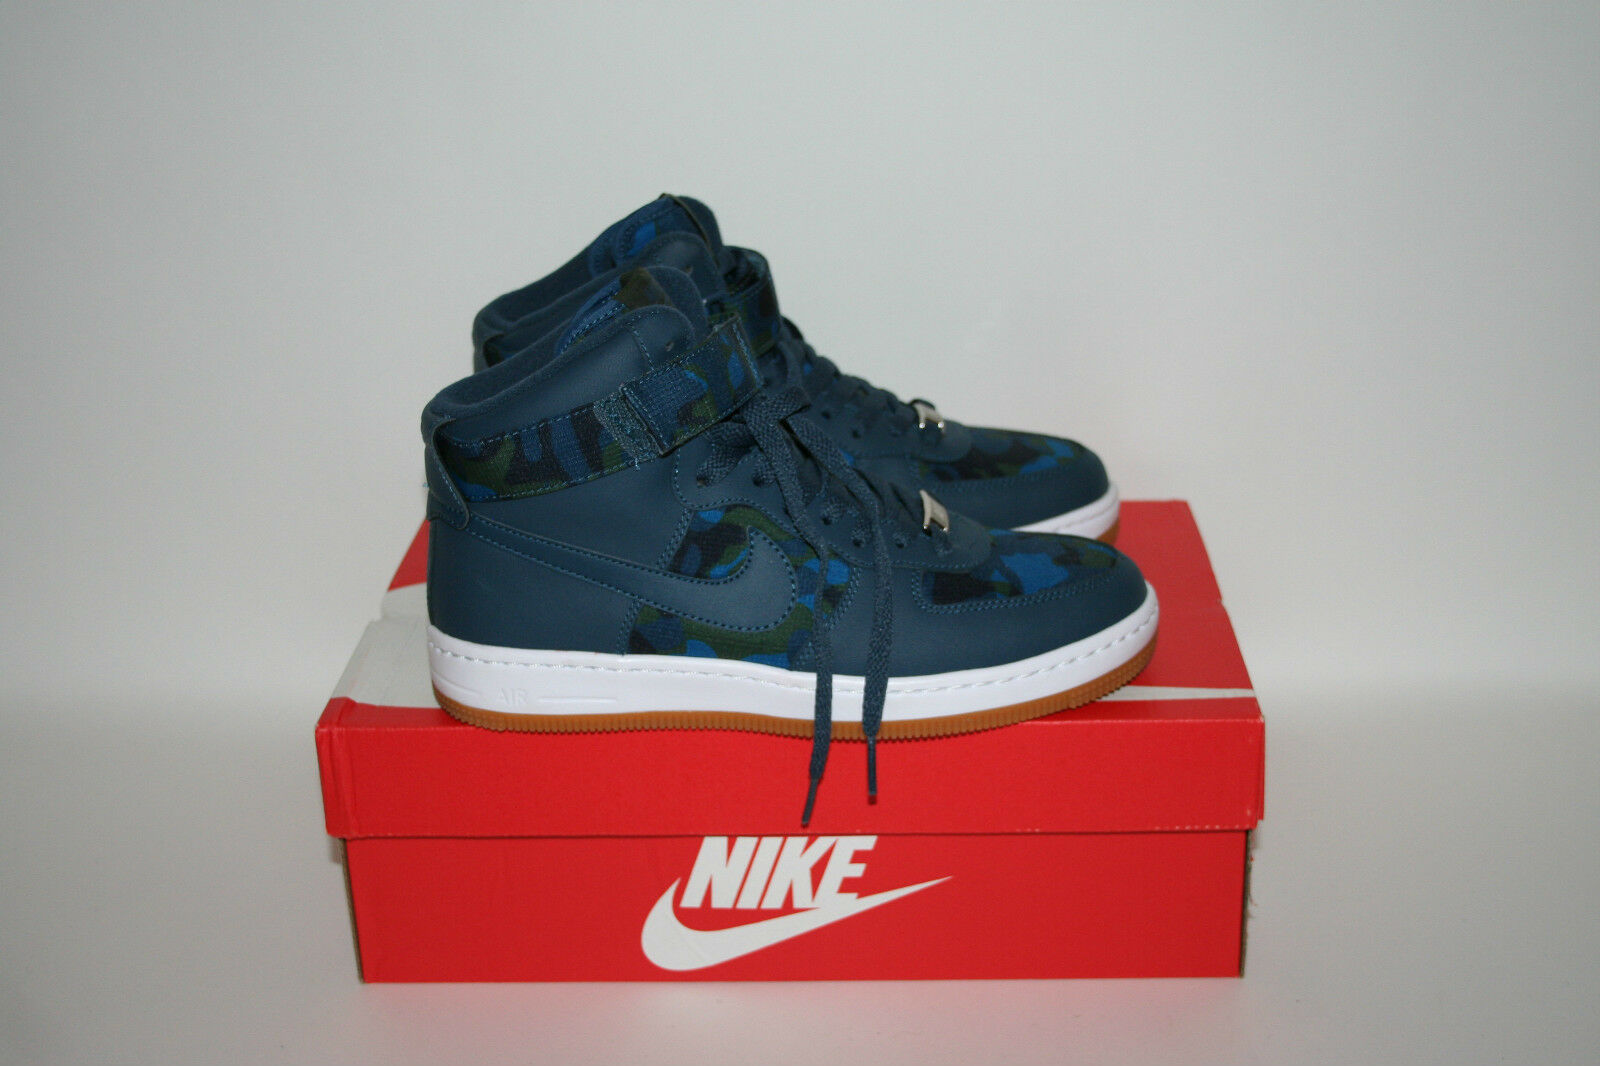 Nike WMNS AIR FORCE FORCE AIR 1 Ultra Force Mid stampa mimetico blu UK4.5/US7/EU38 807384-400 ea6163